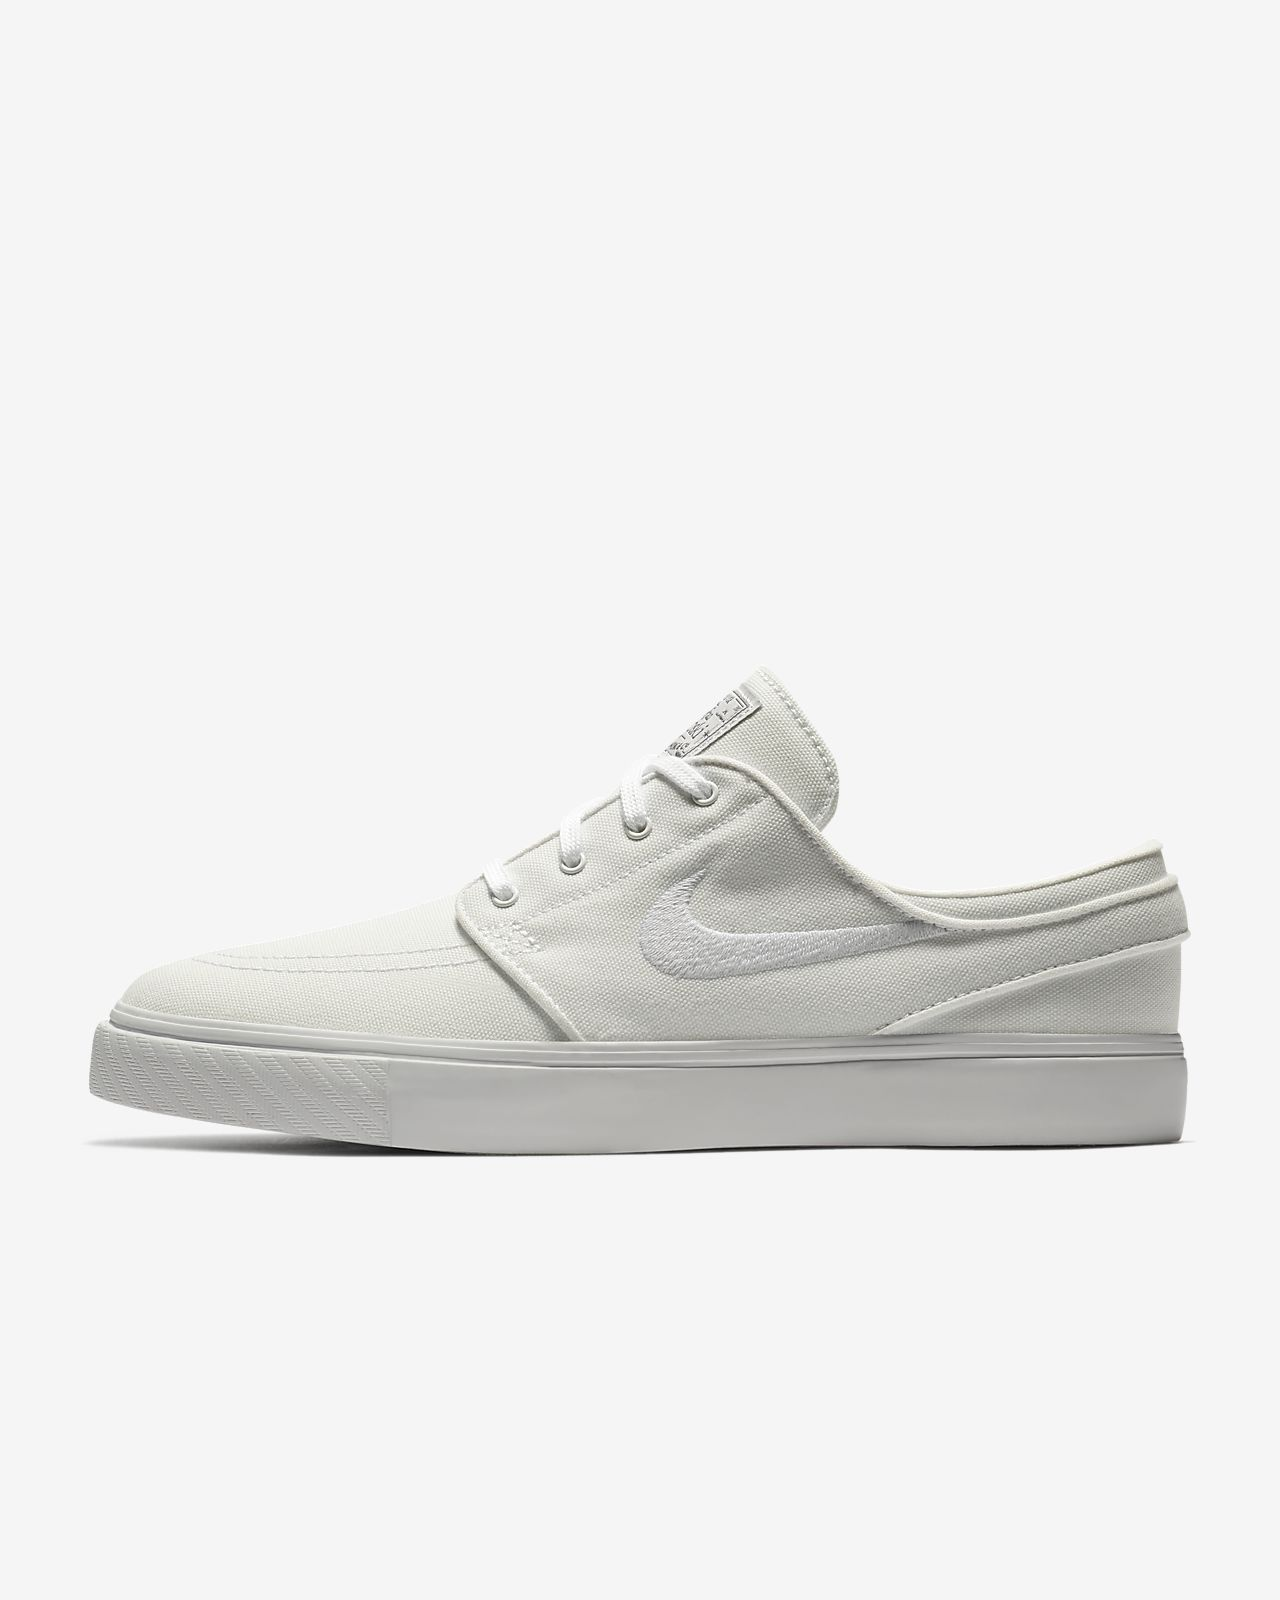 buy online e7c7a 6934b ... Nike SB Zoom Stefan Janoski Canvas Men s Skate Shoe